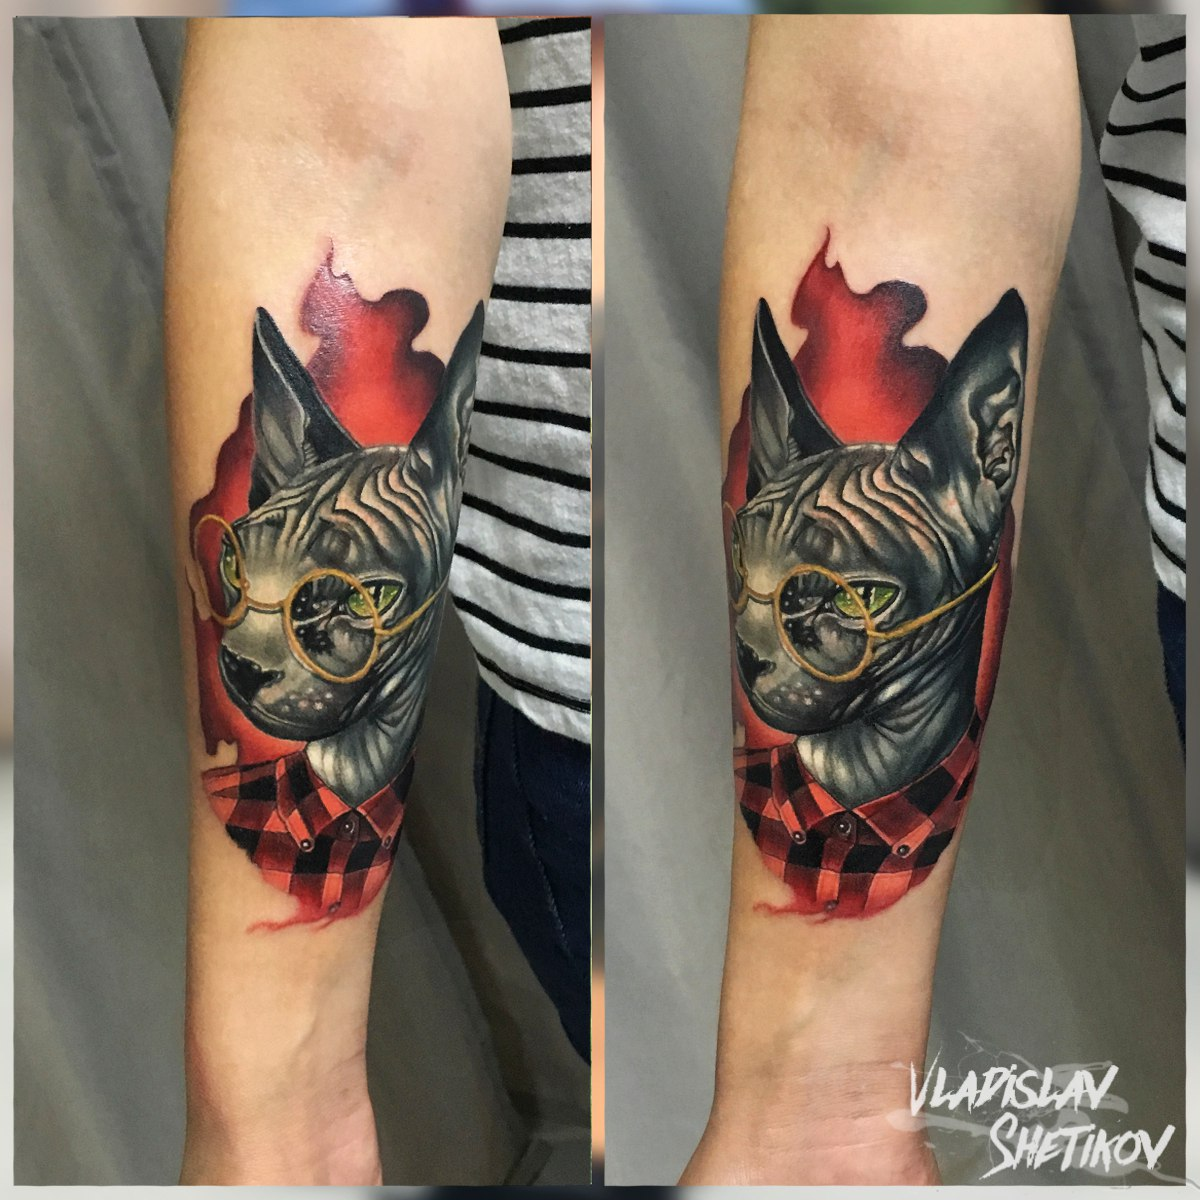 Hipster cat tattoo on forearm